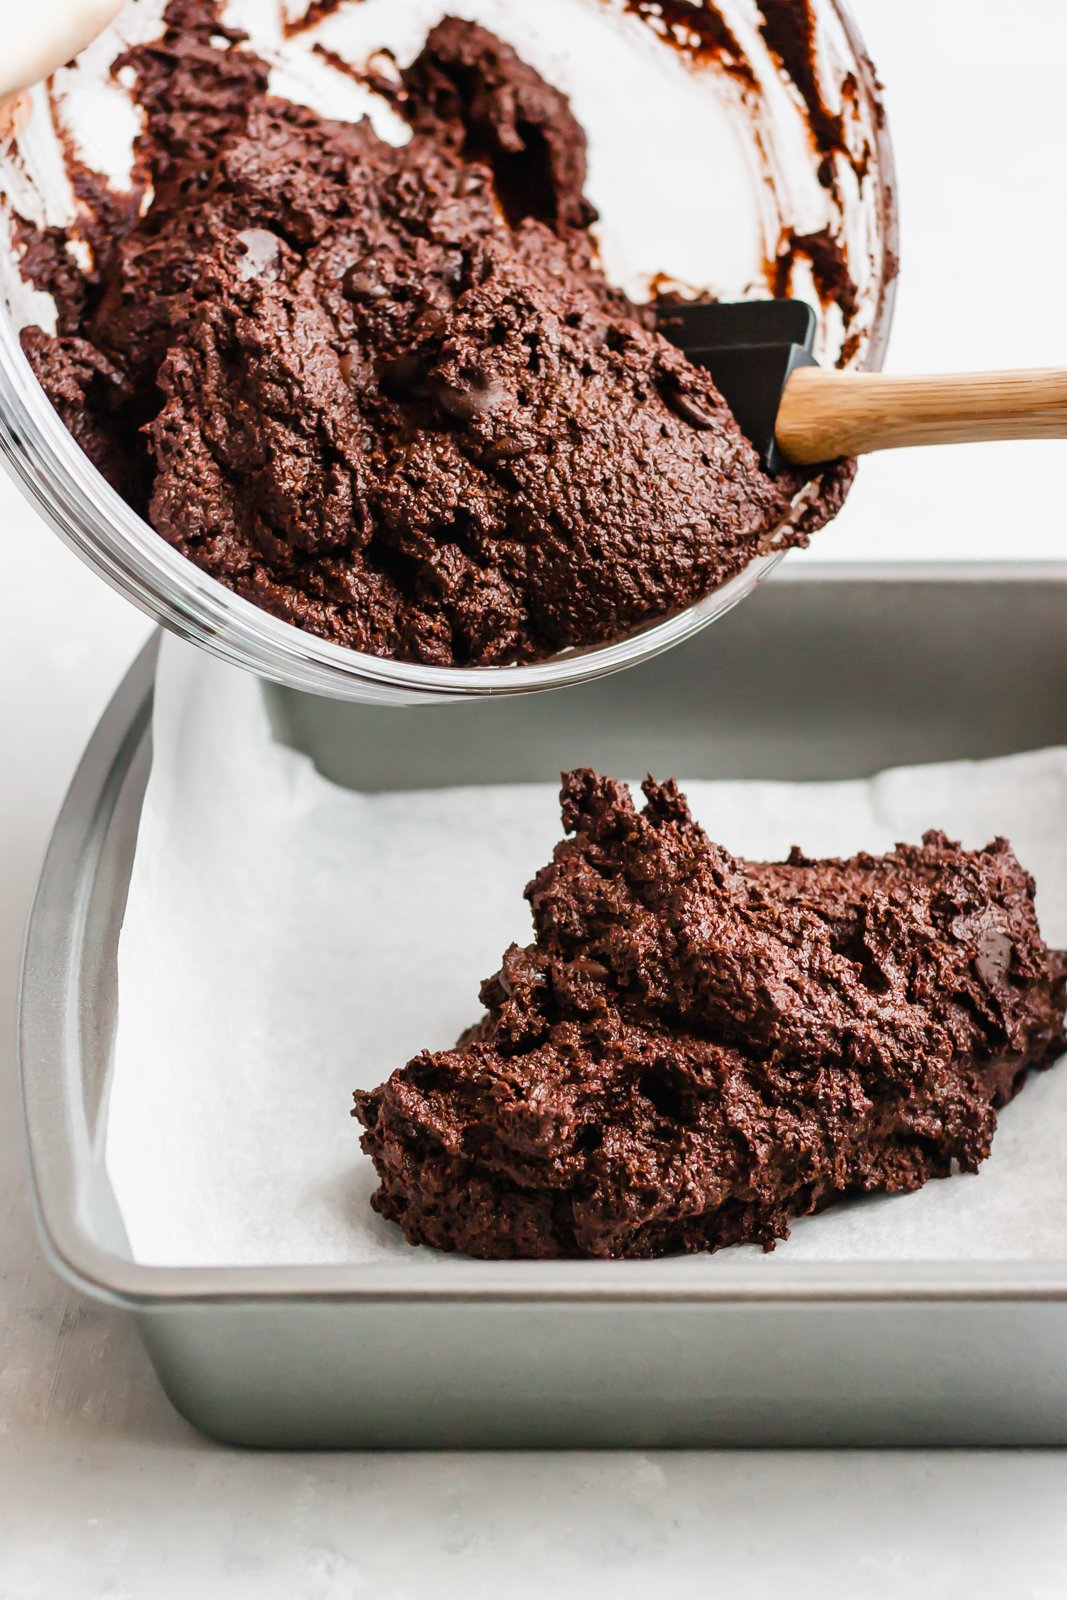 paleo double chocolate banana bread batter being poured into a pan lined with parchment paper